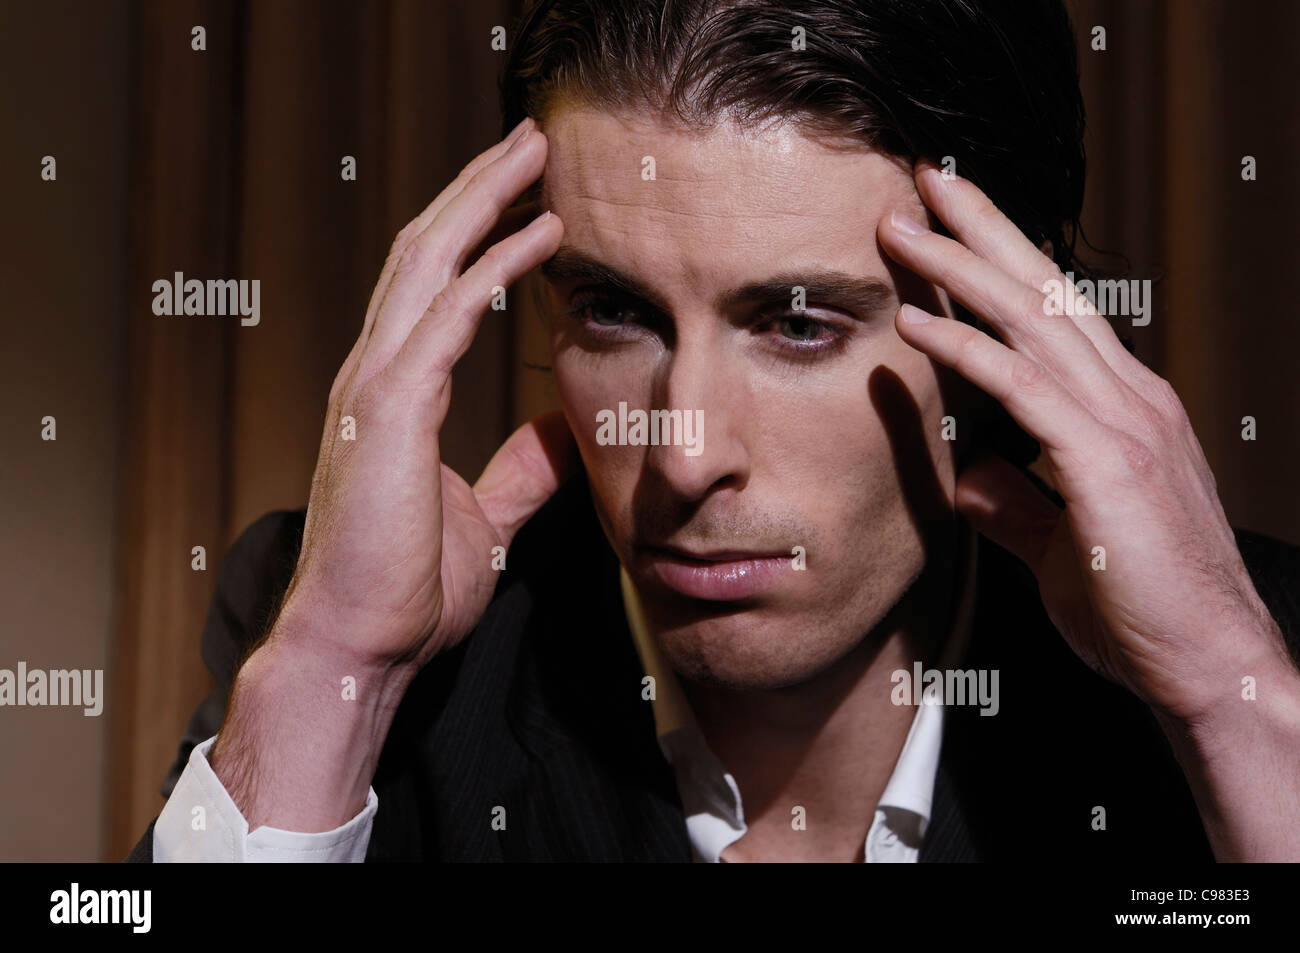 Stressed young man sitting at a desk and rubbing his temples. Closeup of face. - Stock Image